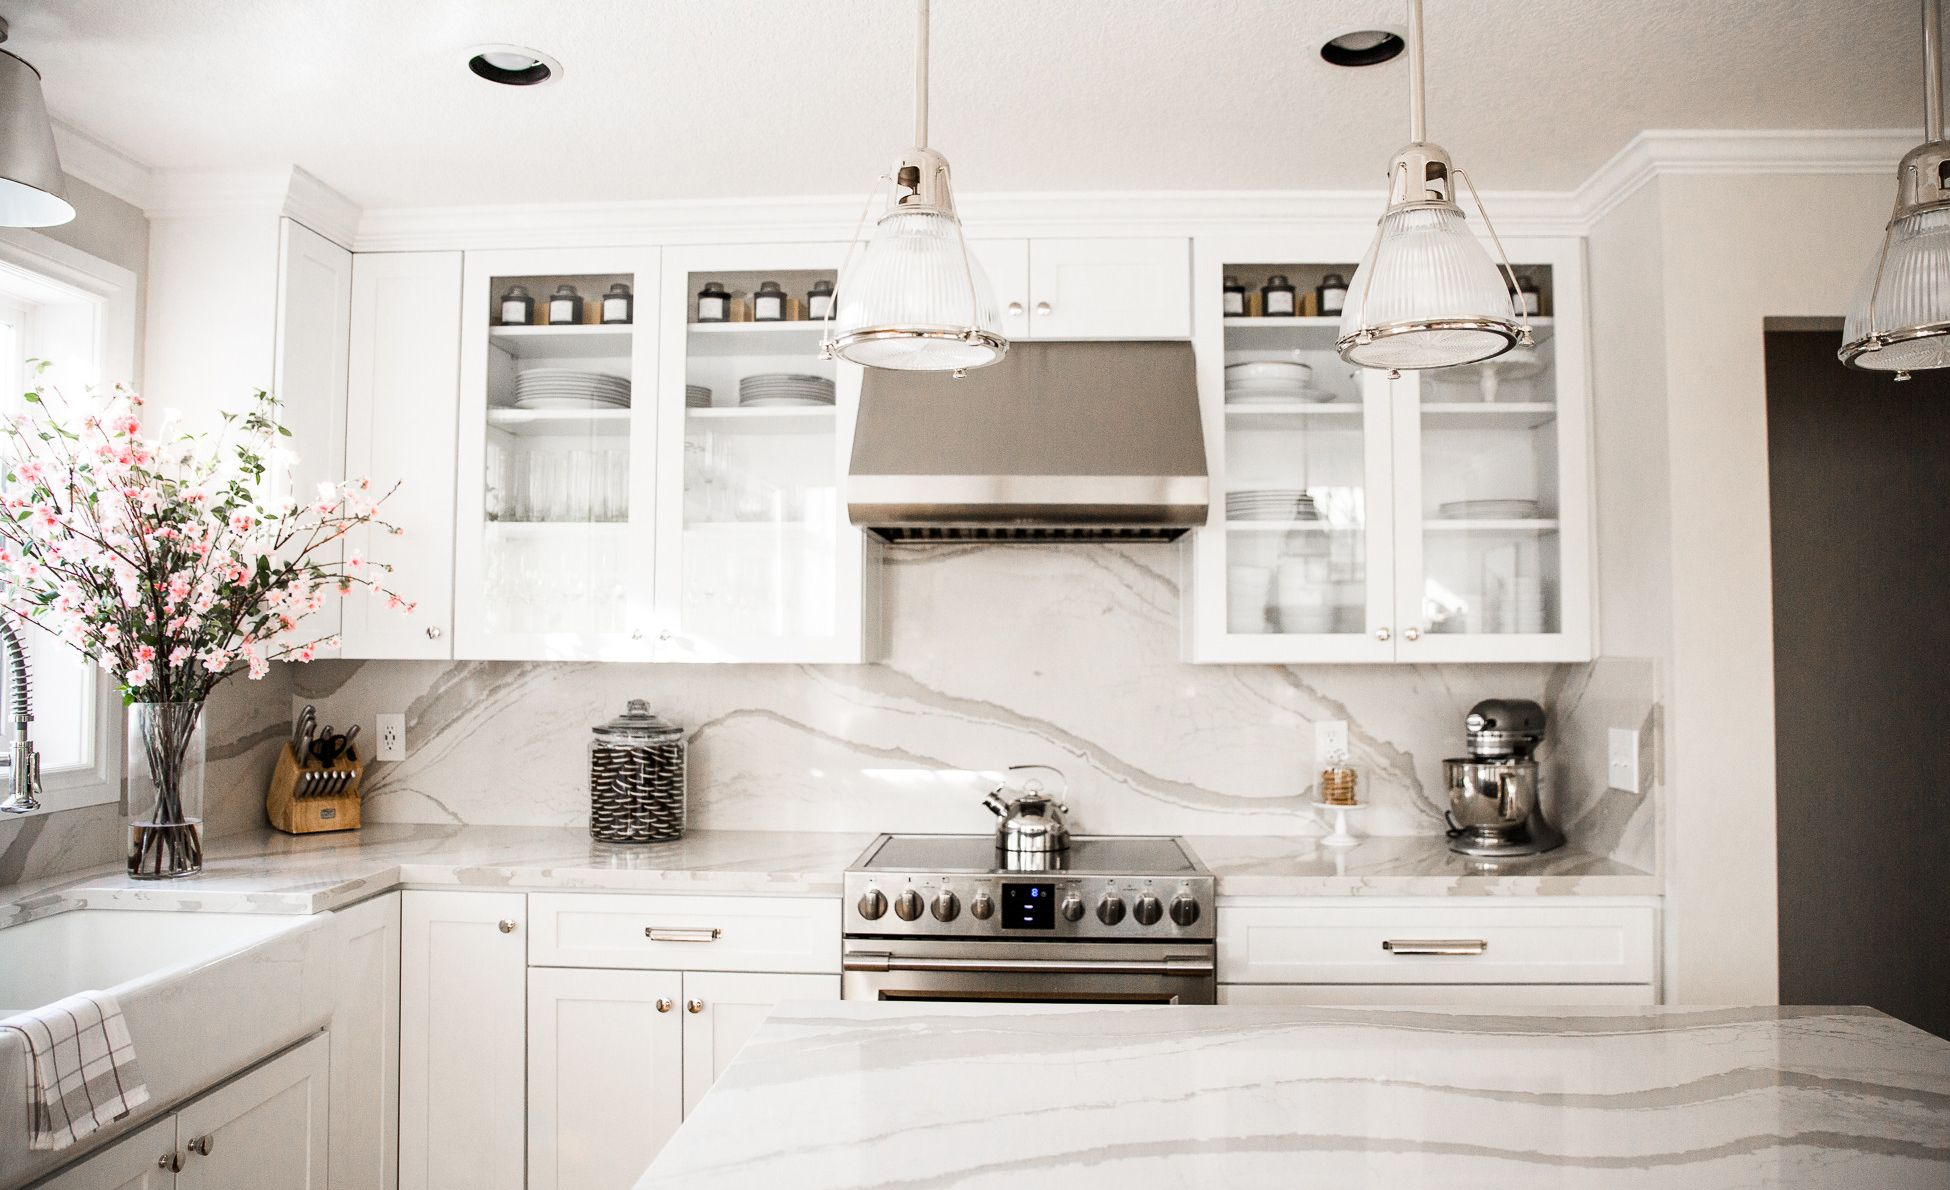 A Cambria Brittanicca Warm™ backsplash extends the intriguing movement of the countertops in an elegant white kitchen.